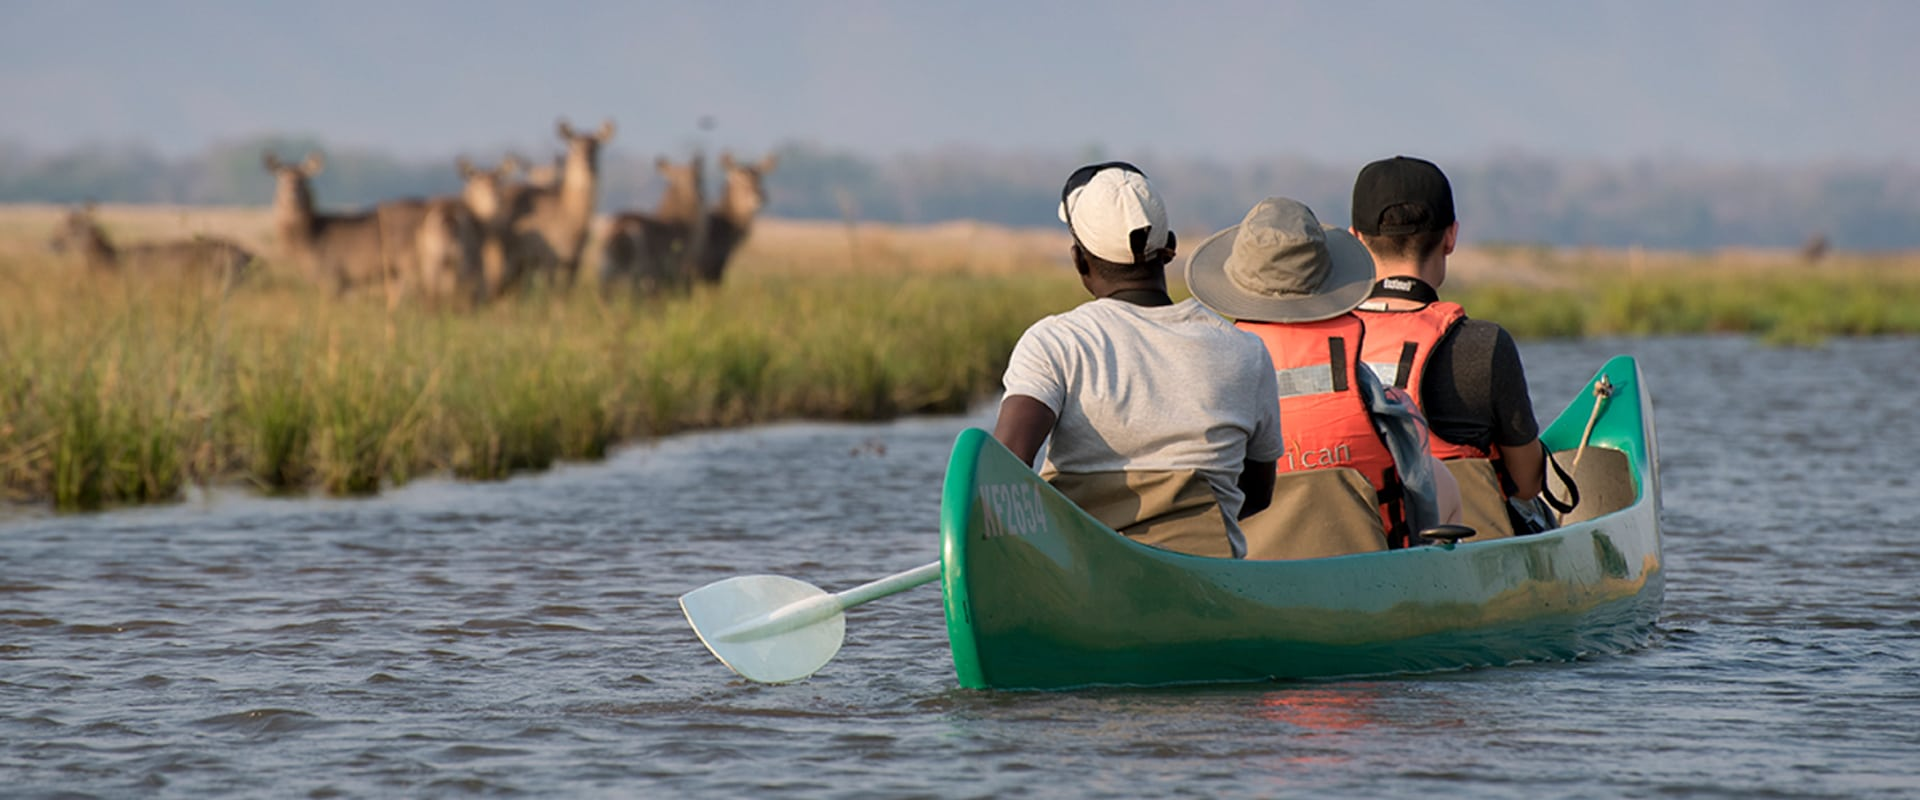 Explore the River of Life on a canoe safari